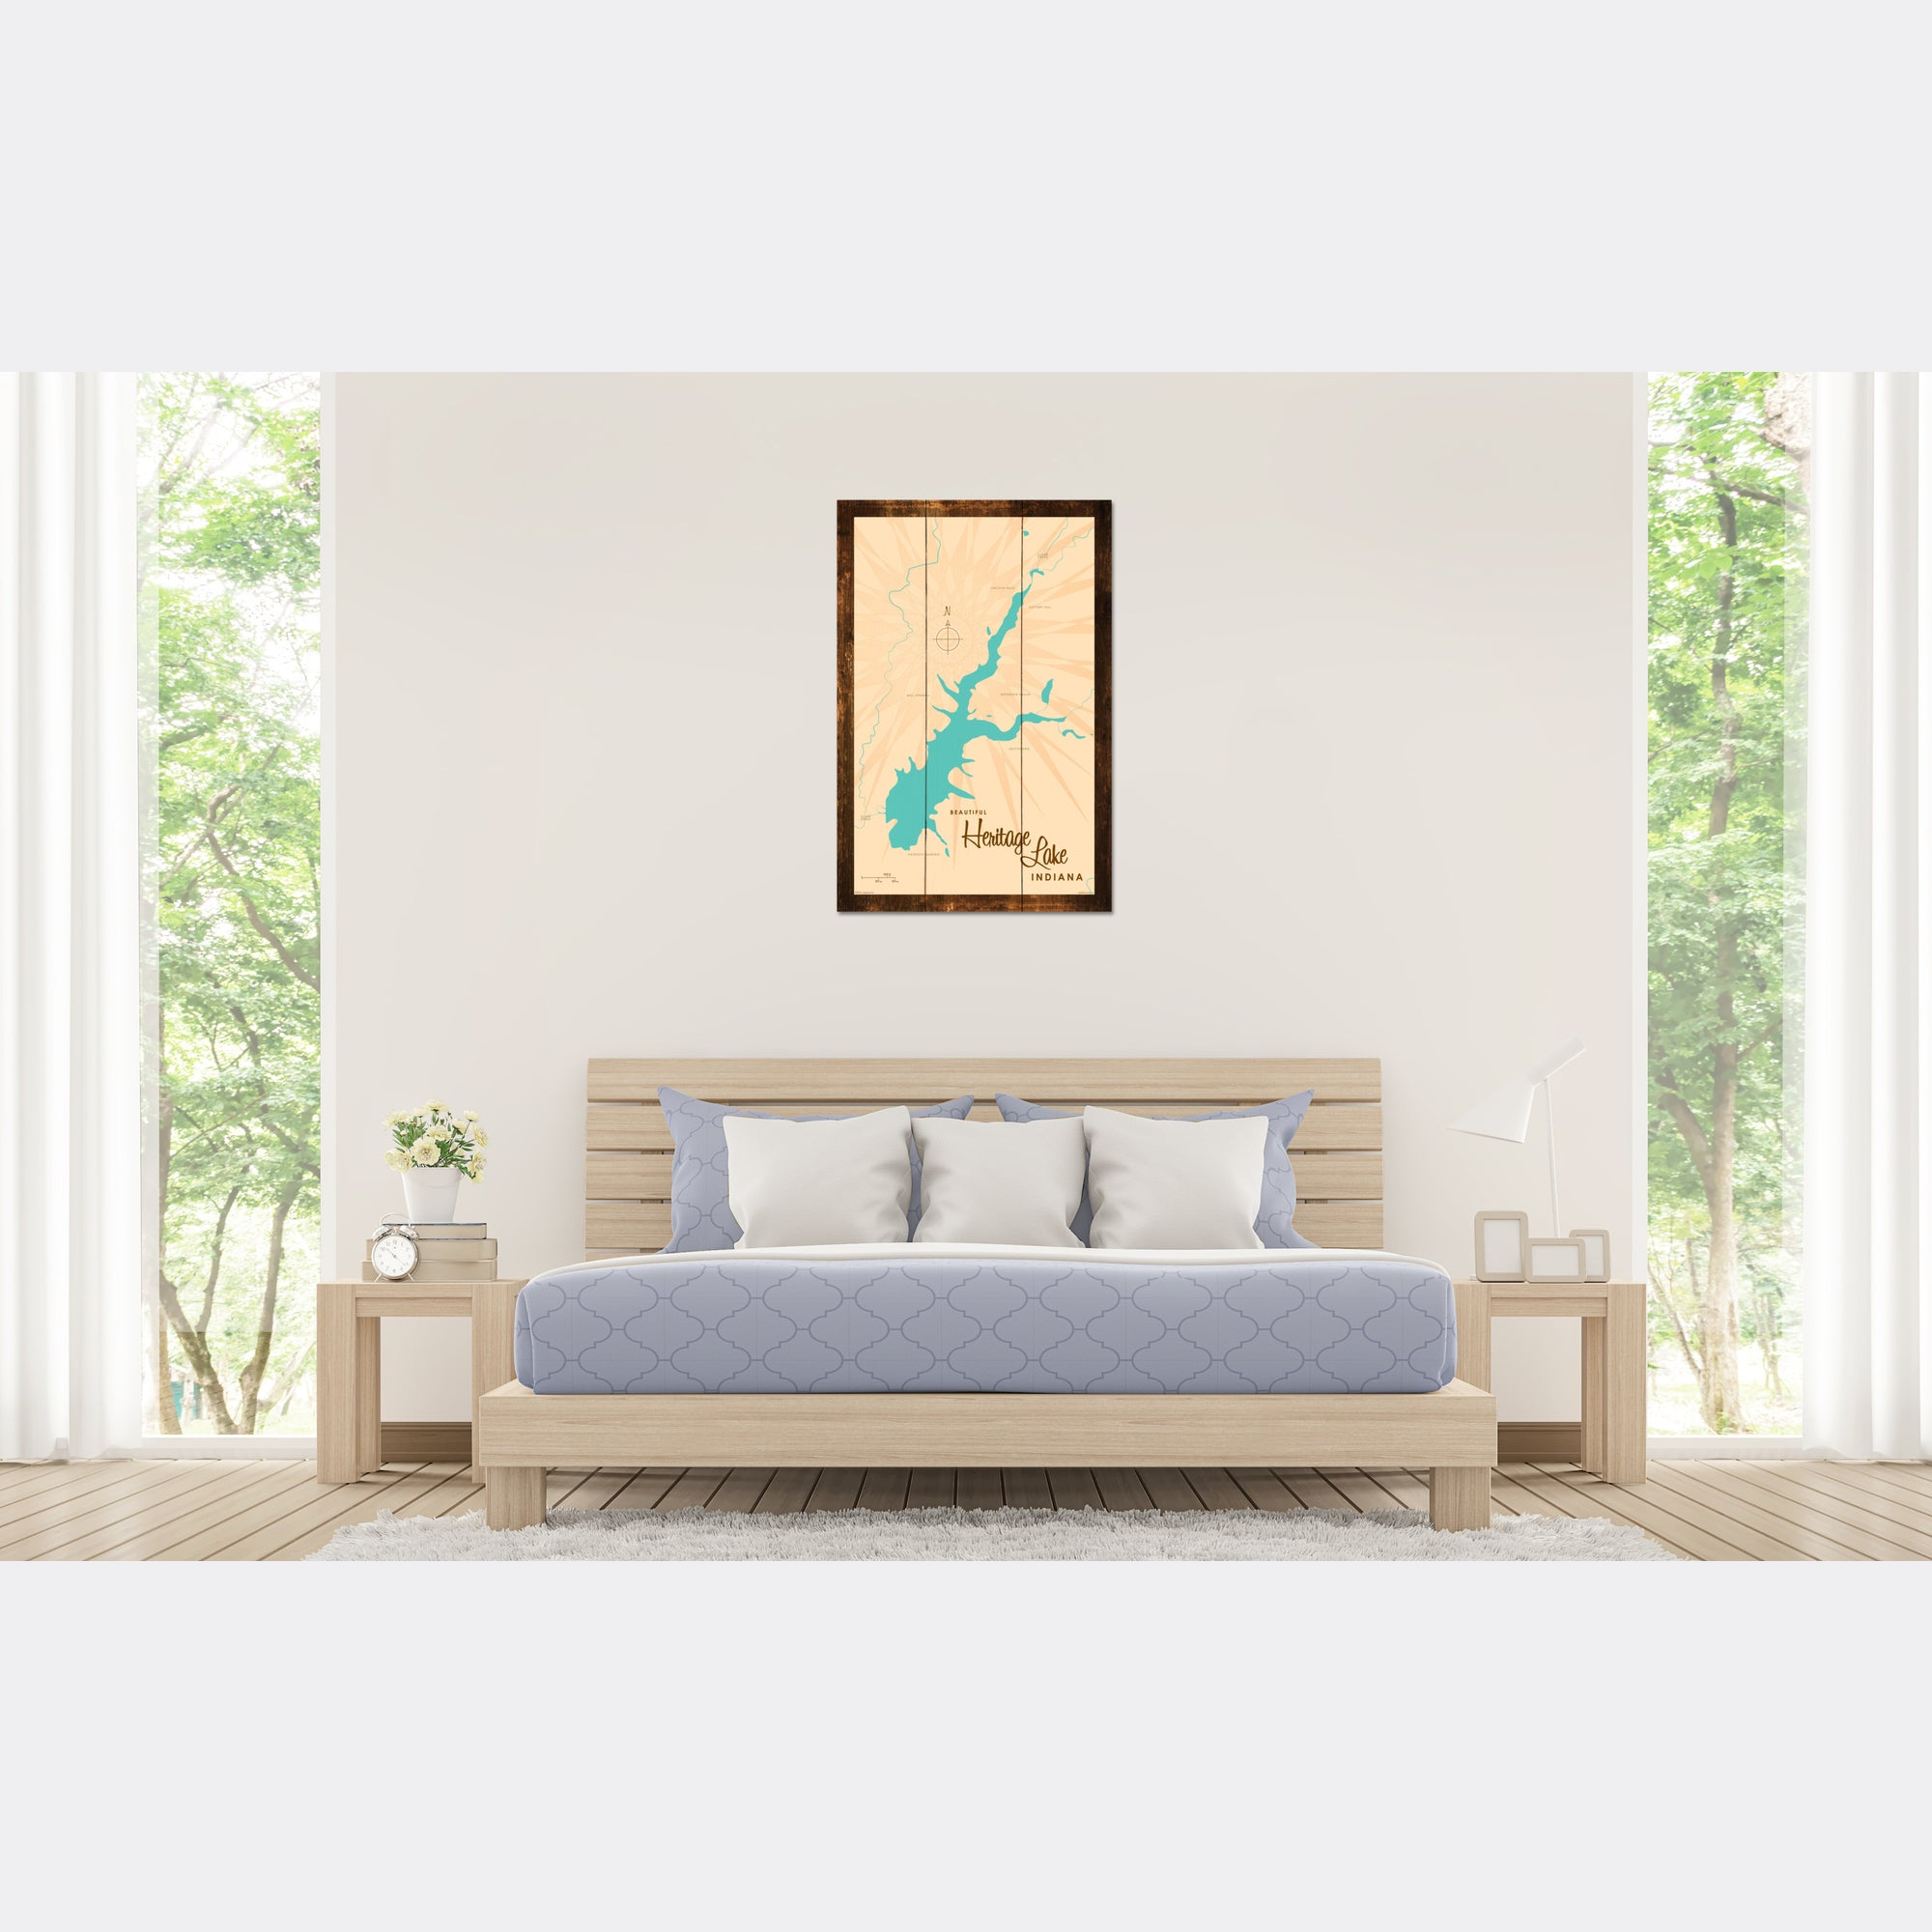 Heritage Lake Indiana, Rustic Wood Sign Map Art